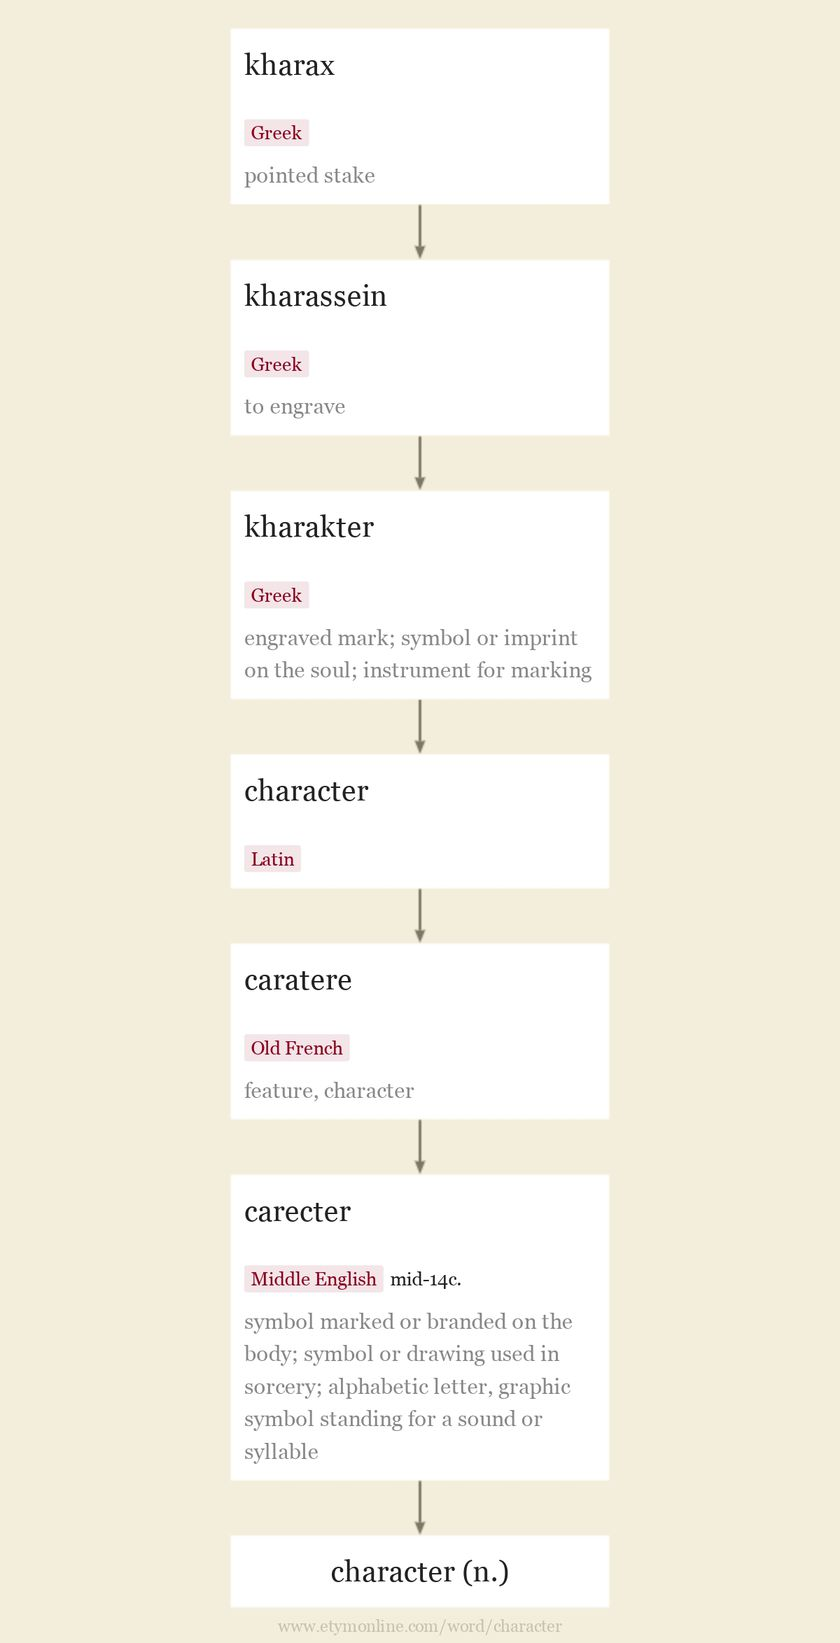 Origin and meaning of character